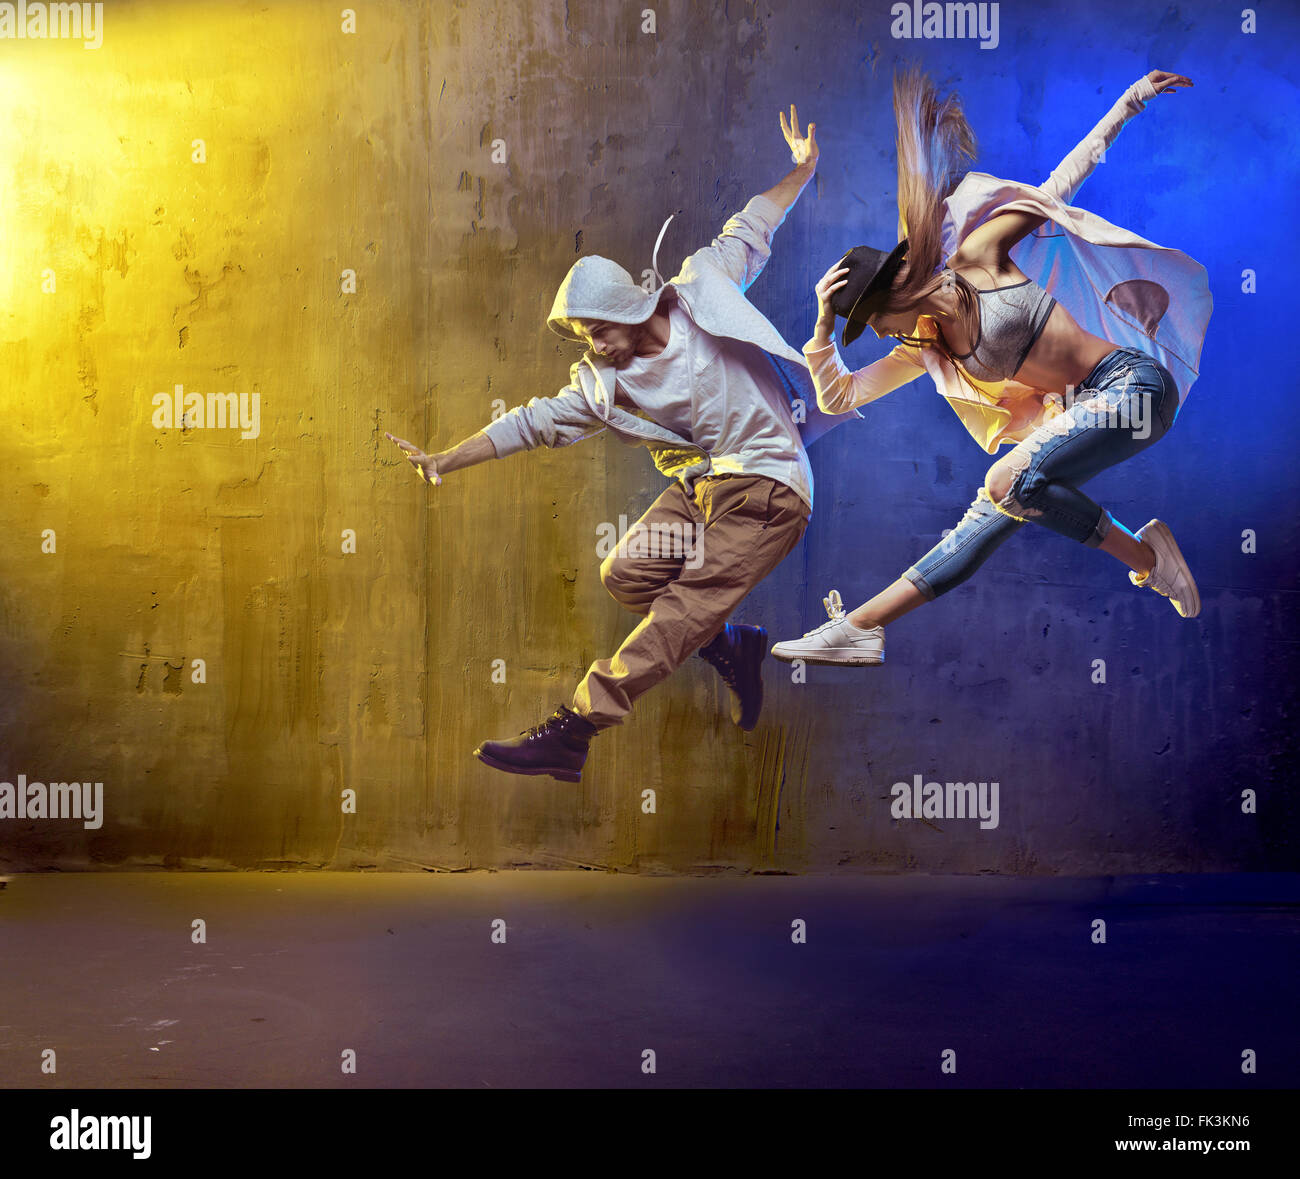 Stylish dancers dancing in a concrete place - Stock Image